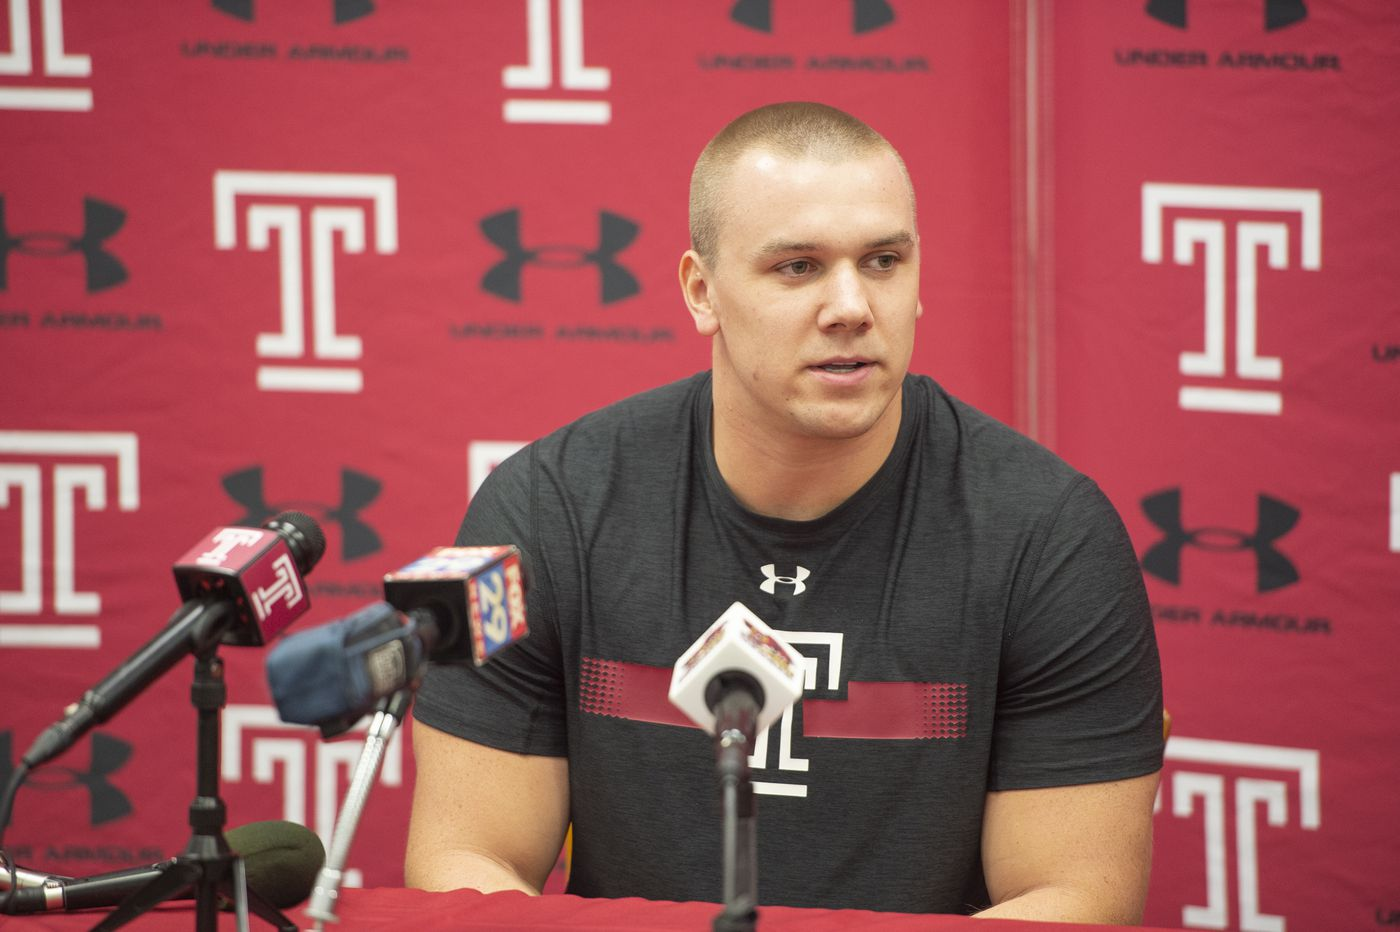 Zack Mesday is a Temple poster child for grit and resilience | Mike Jensen